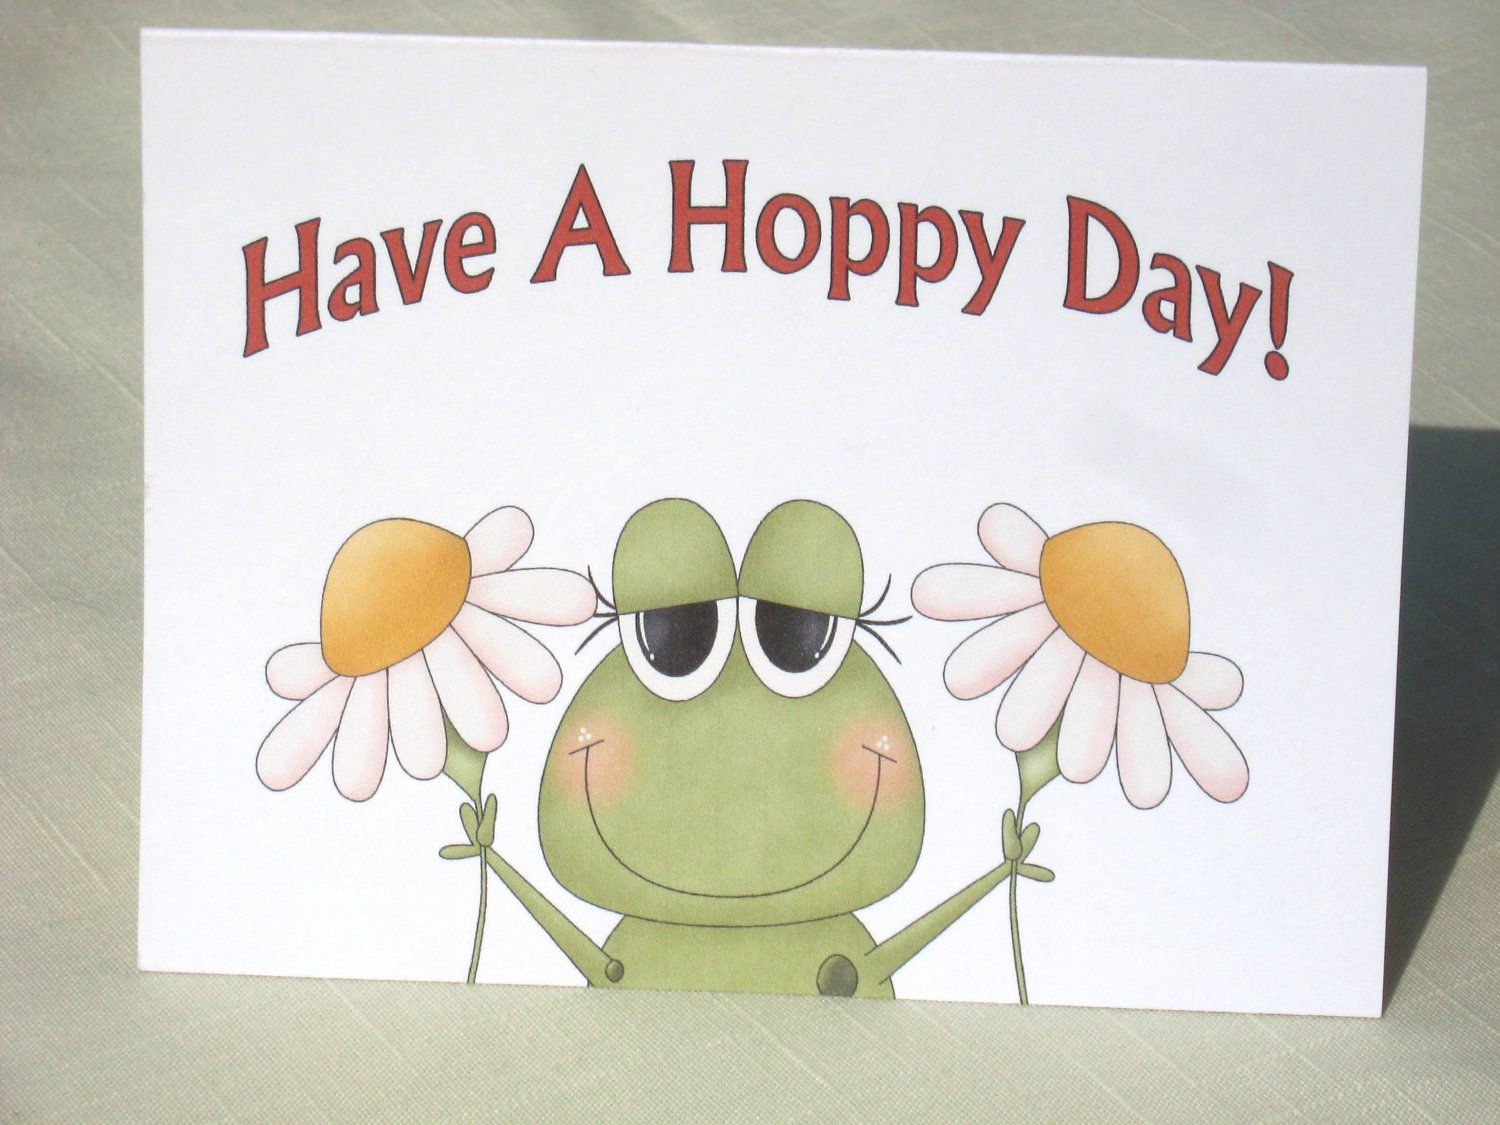 Hoppy frog note cards frog greeting cards green and red set of hoppy frog note cards frog greeting cards green and red set of 8 925 via etsy m4hsunfo